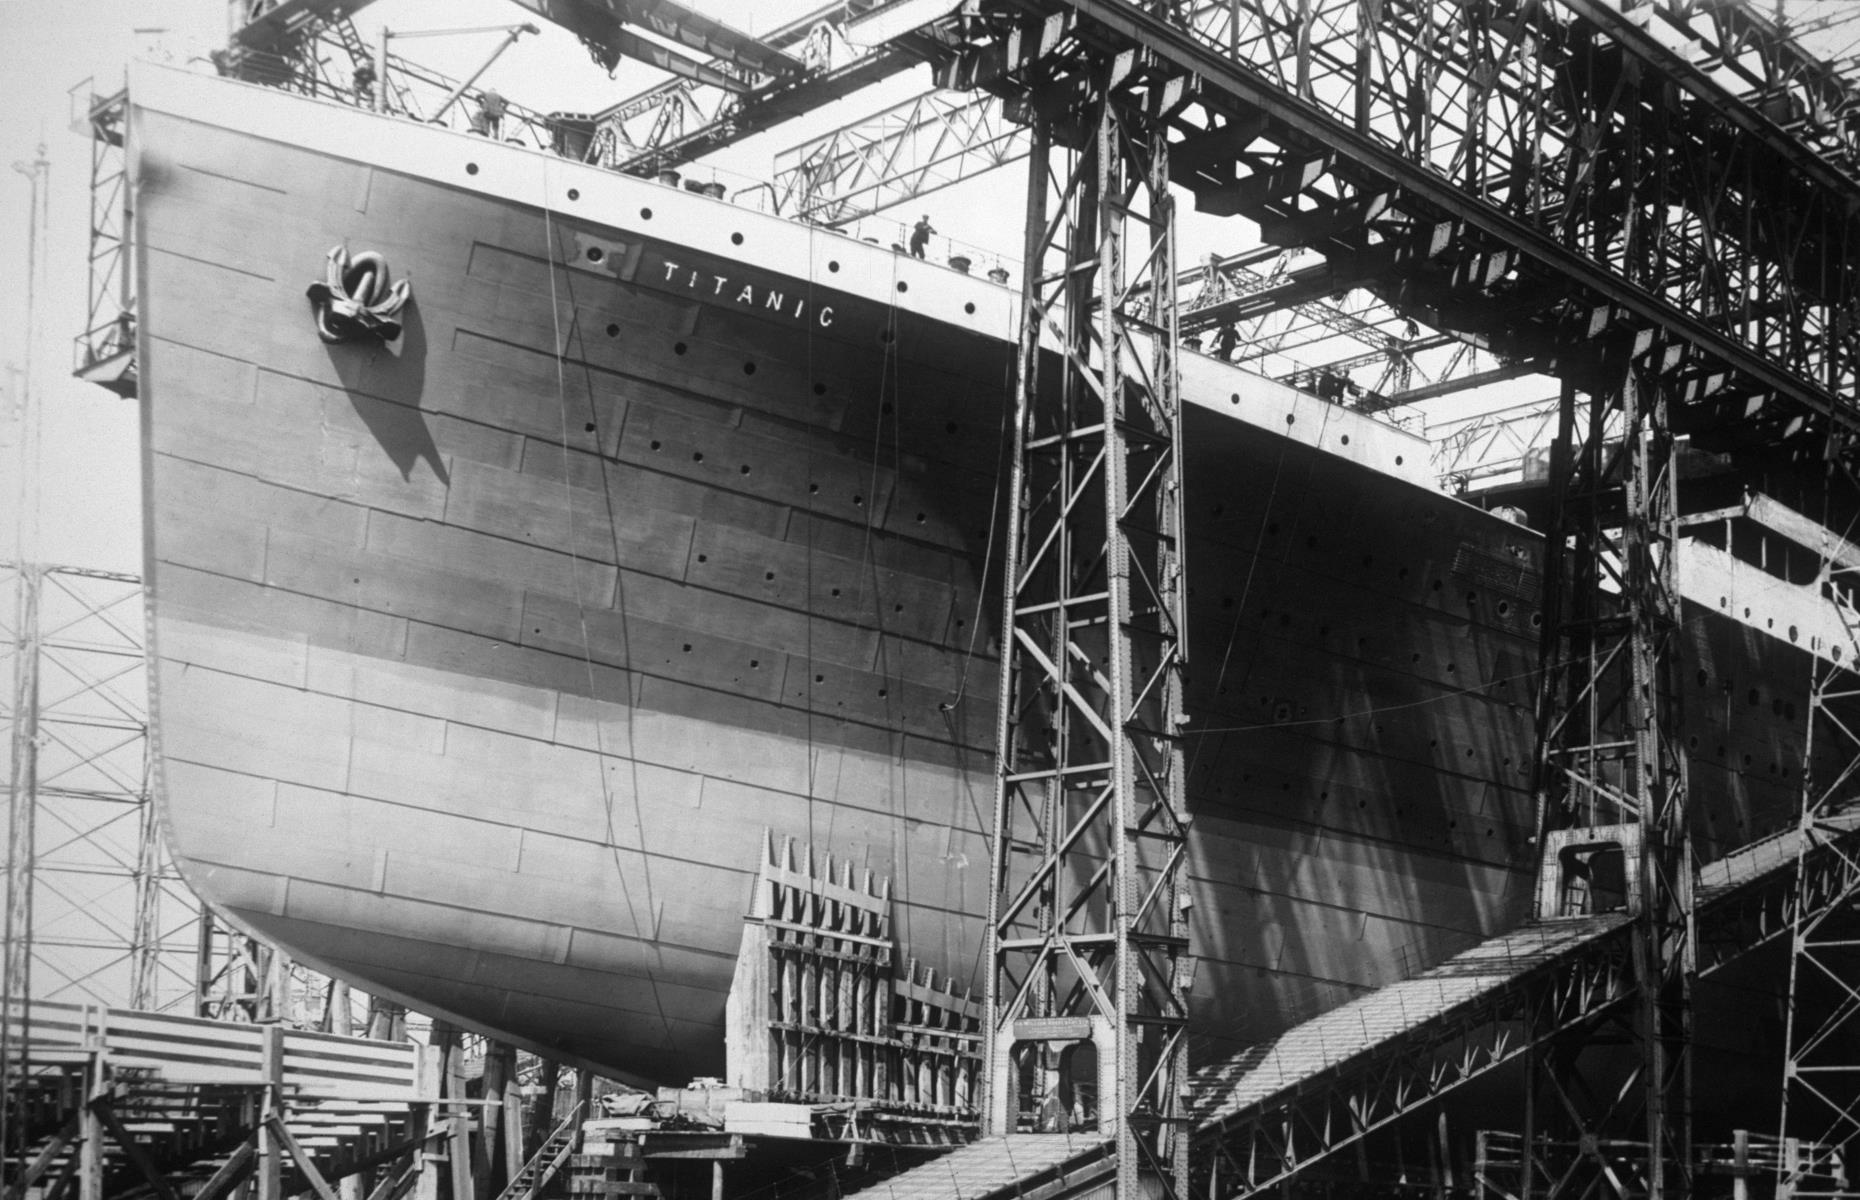 Slide 3 of 46: It took four years from 1909 to build the Titanic at the Harland & Wolff shipyard in Belfast, Northern Ireland. Costs were lavish at the time – around$7.4 million (£1.5m)in total, around$192 million (£147m)in today's money. Thanks to 16 watertight compartments (known as bulkheads)that could be shut to prevent flooding, the Titanic was designed from the offto be unsinkable and considered one of the safest ships afloat.